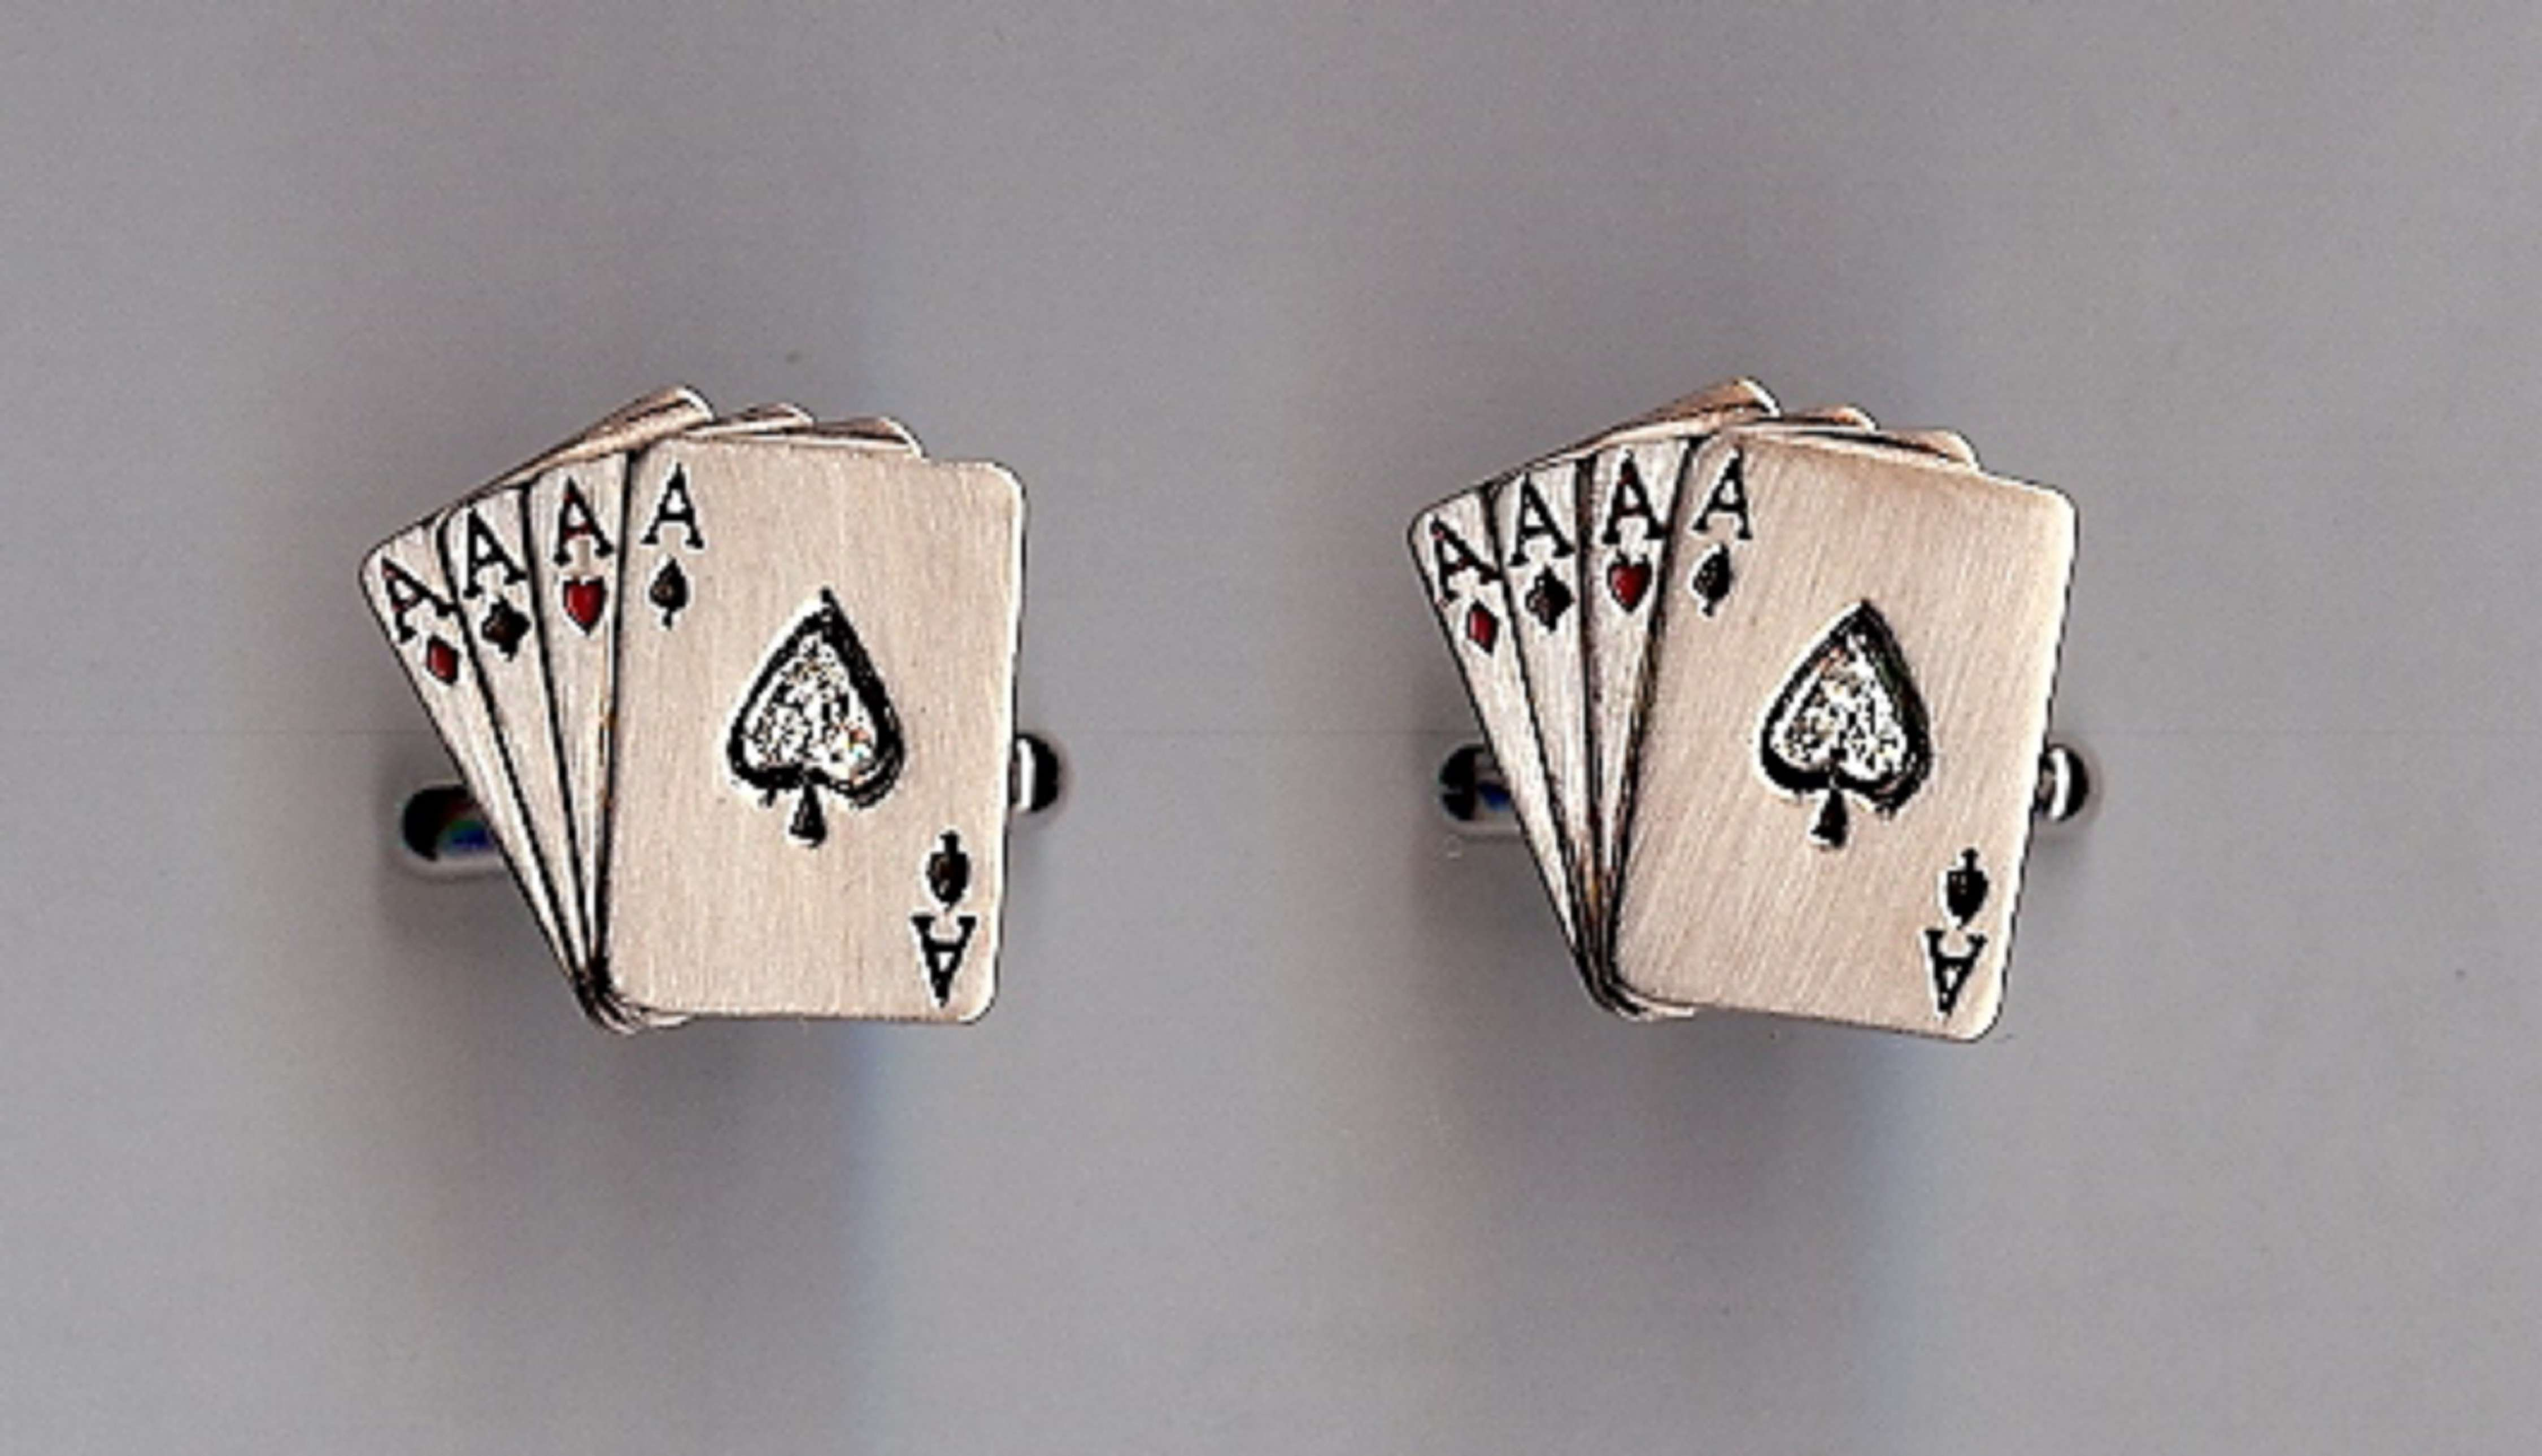 All Aces Cufflinks by Jewellery Designer Archana Aggarwal